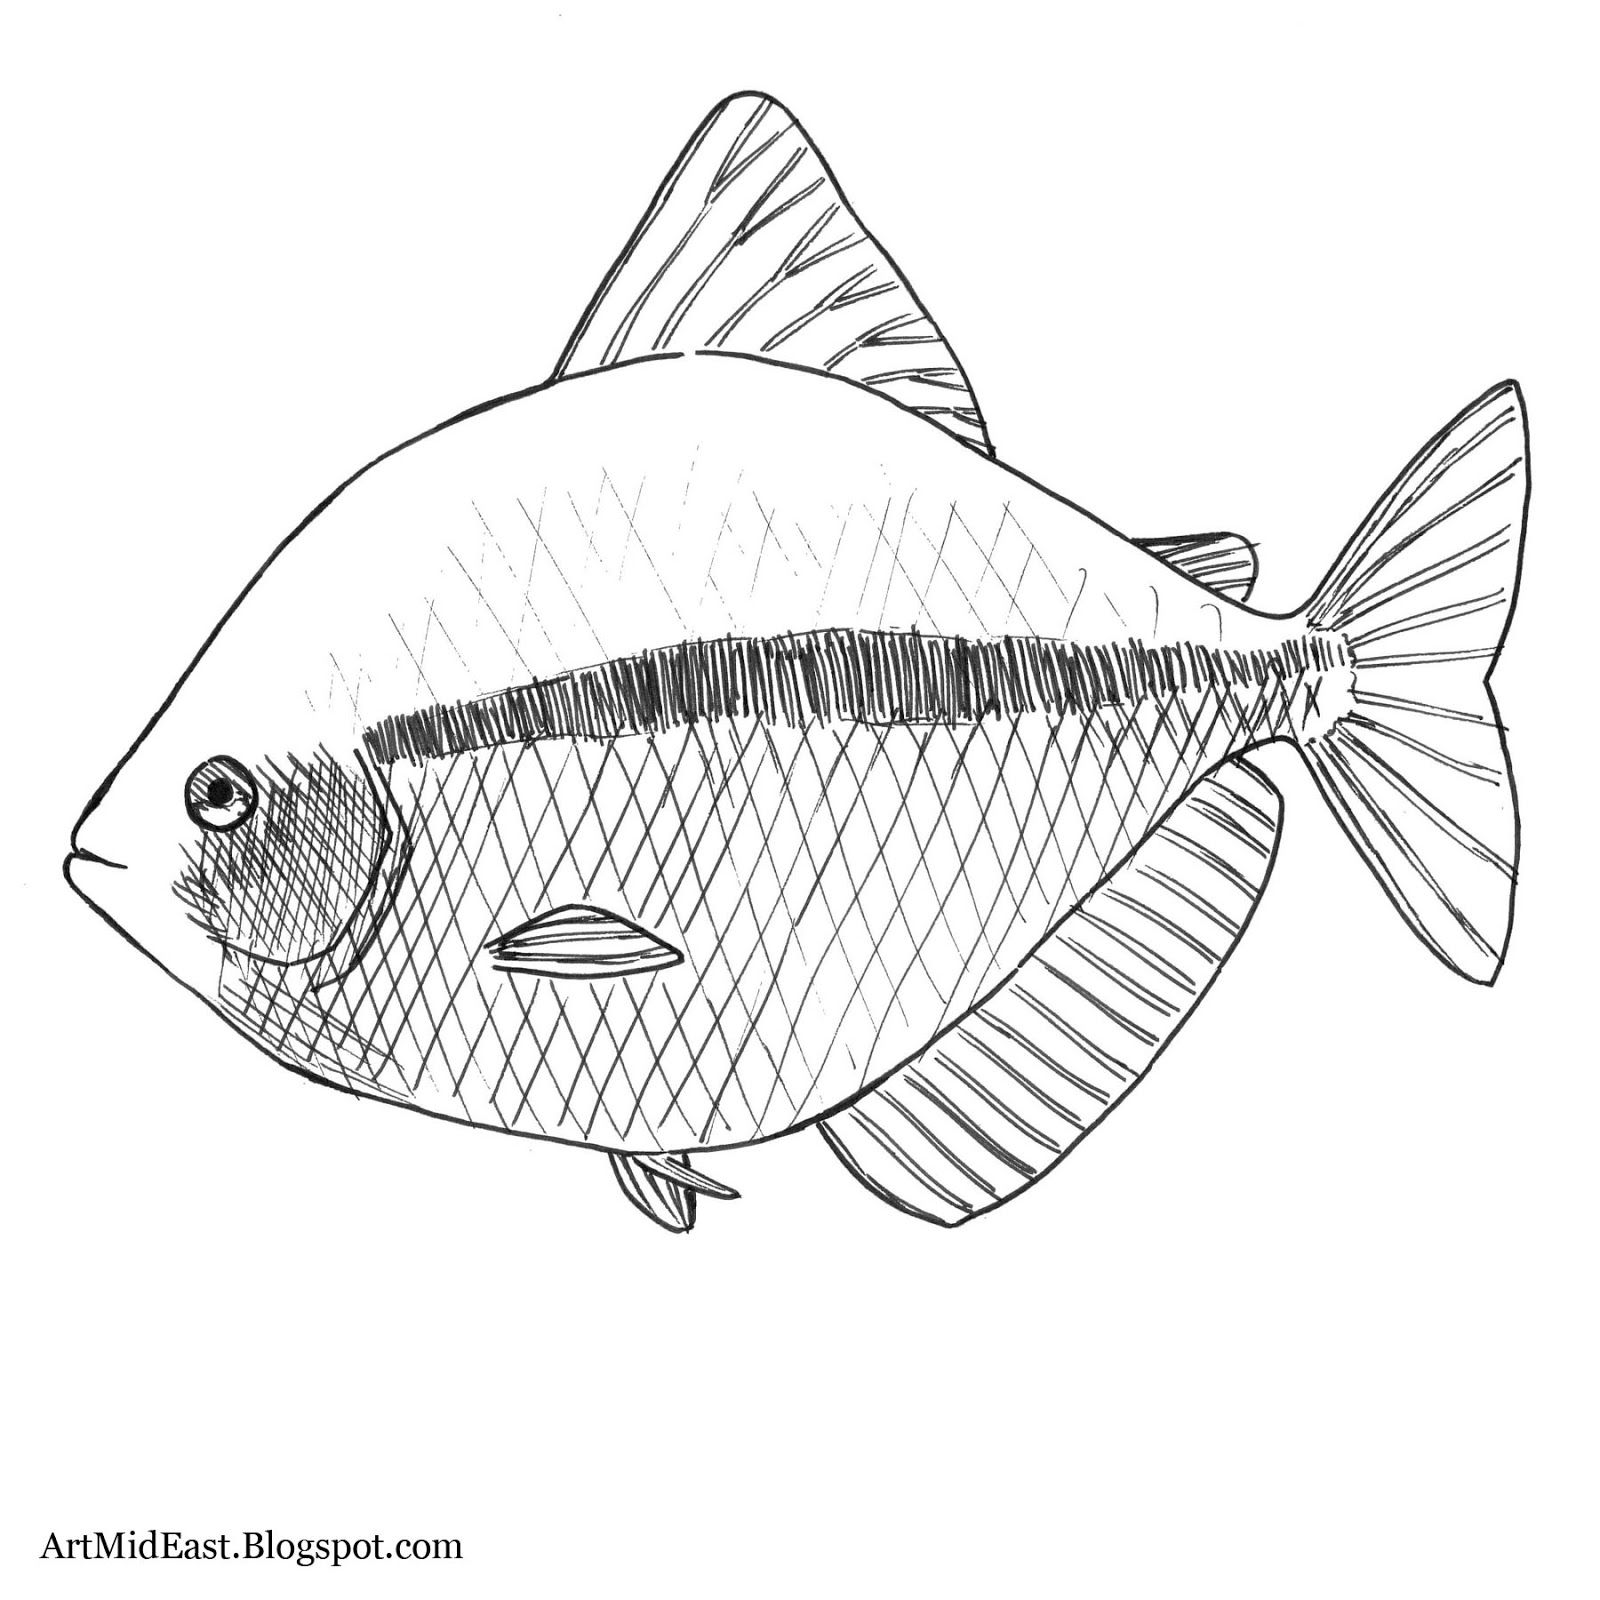 How To Draw A Fish: Step By Step  Drawing Lessons